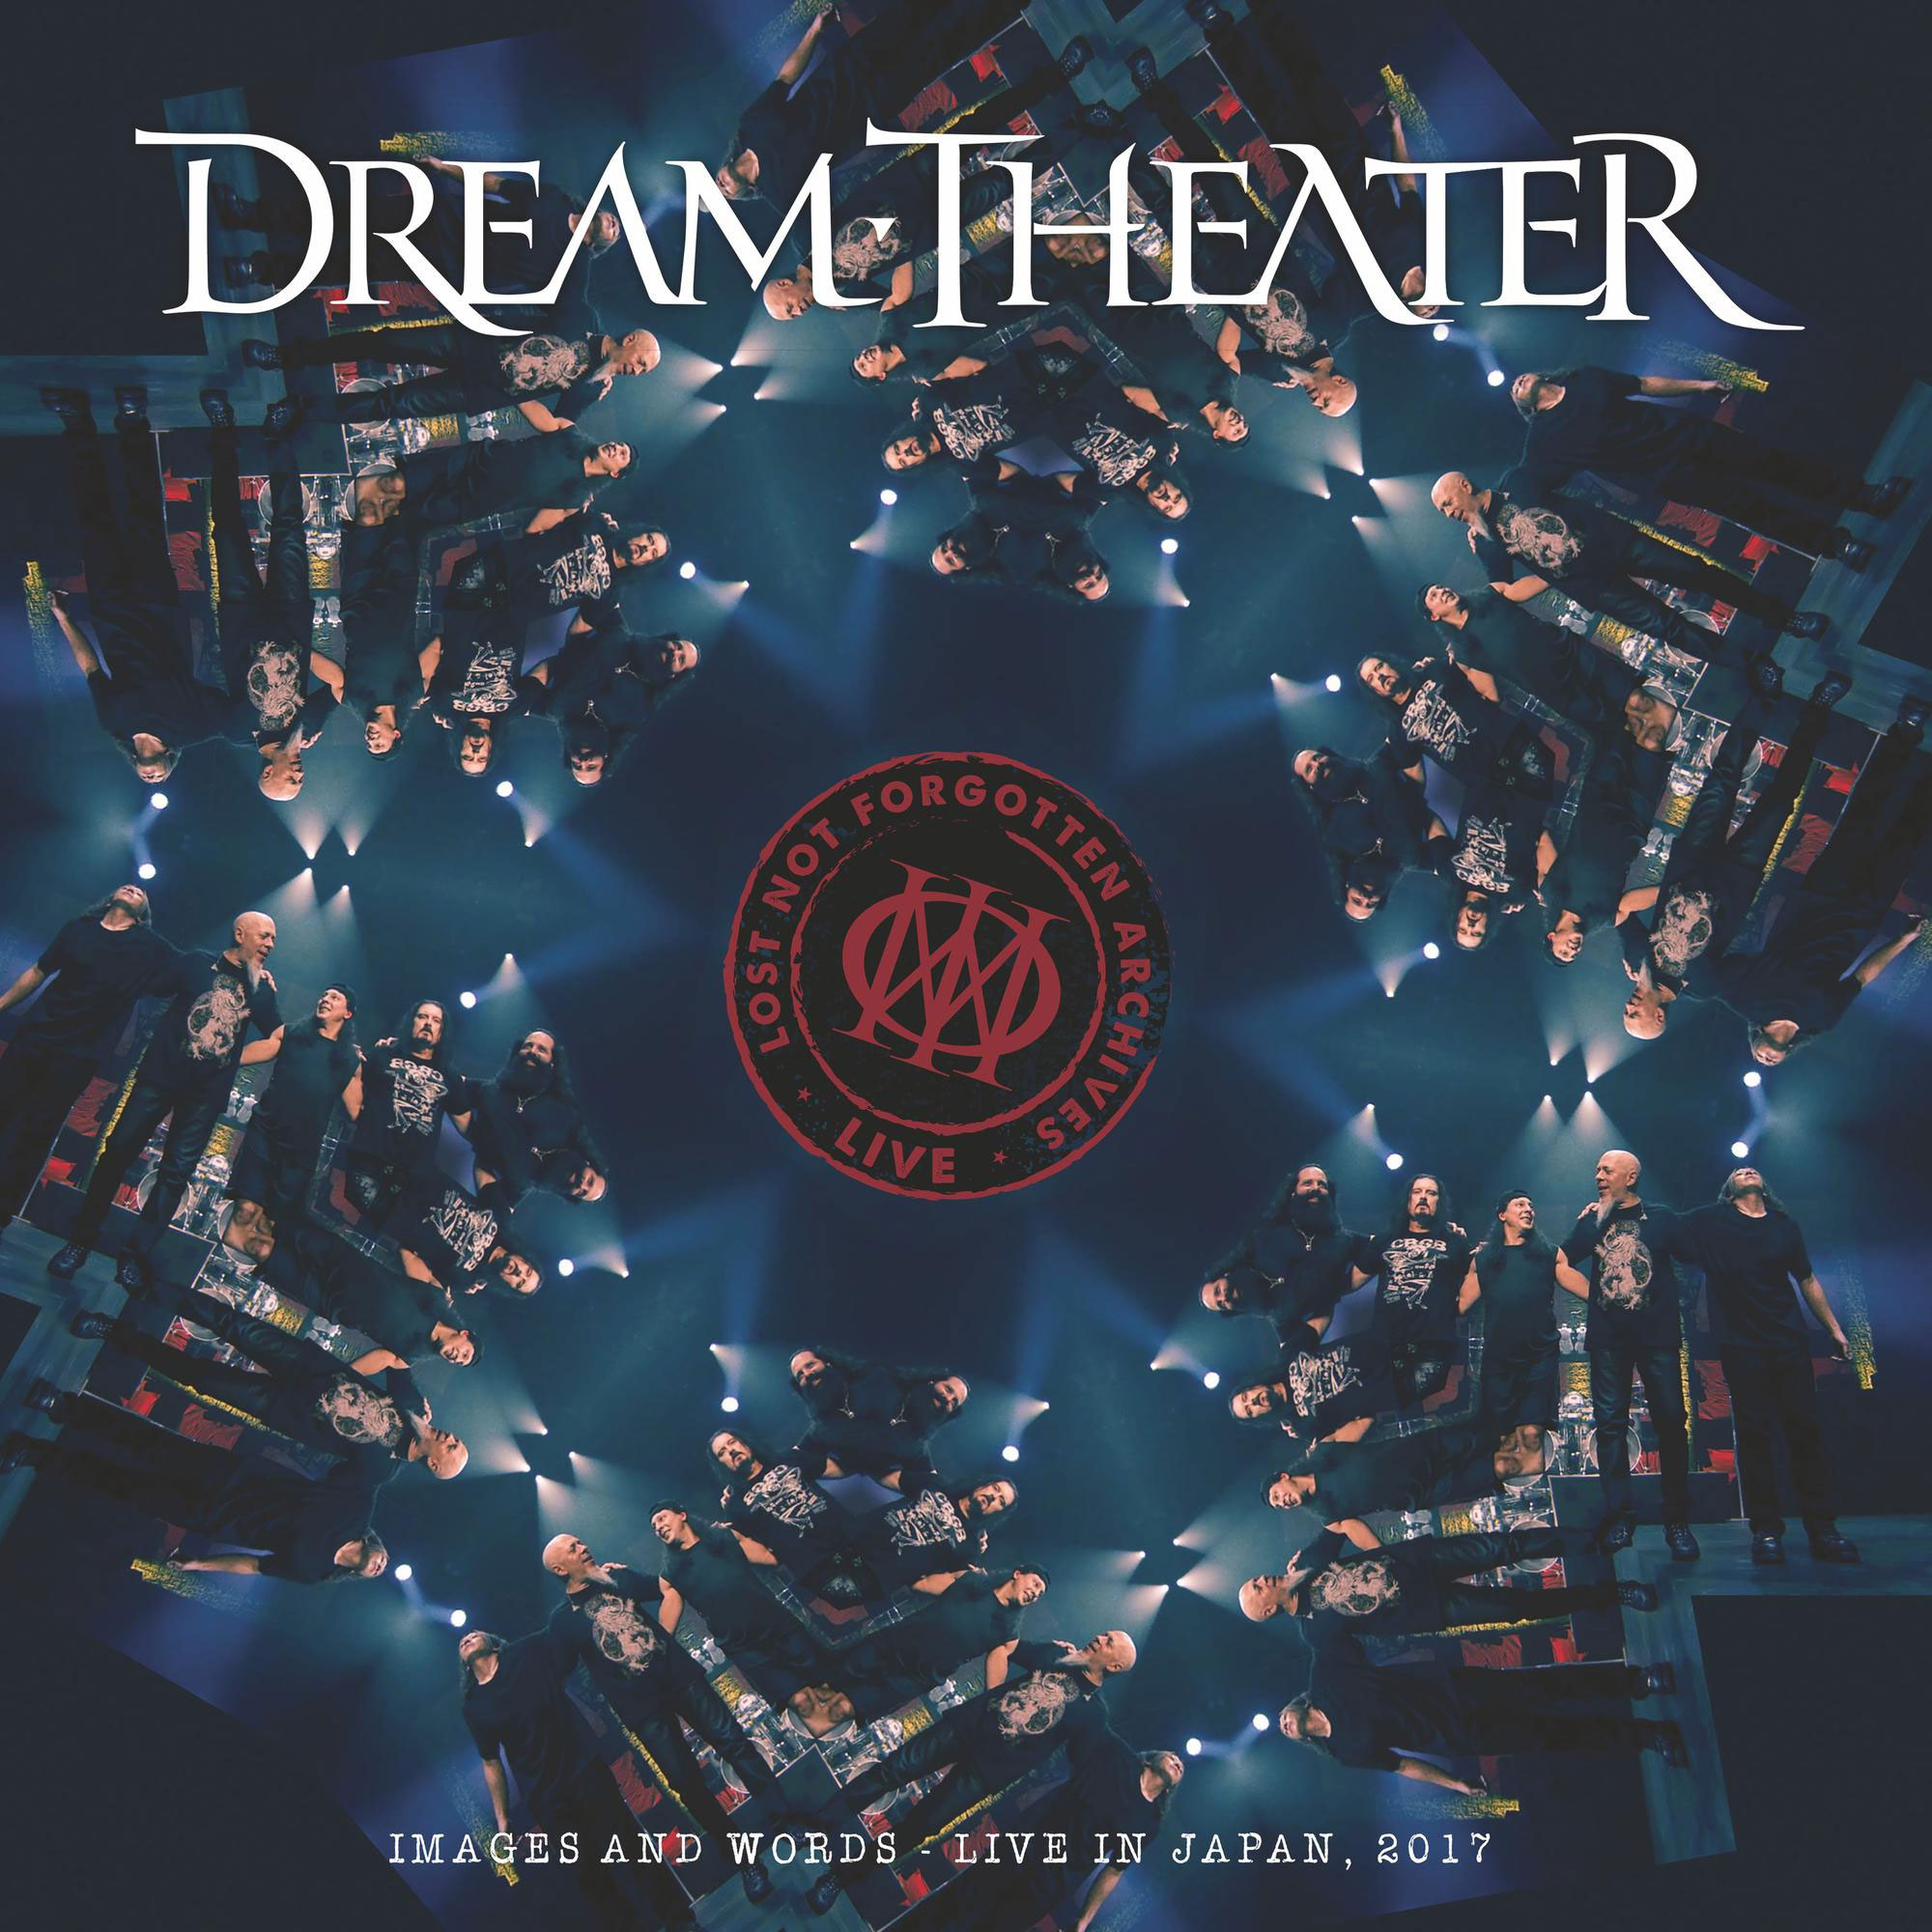 Dream Theater Lost Not Forgotten Archives: Images And Words - Live In Japan, 2017 2LP & CD